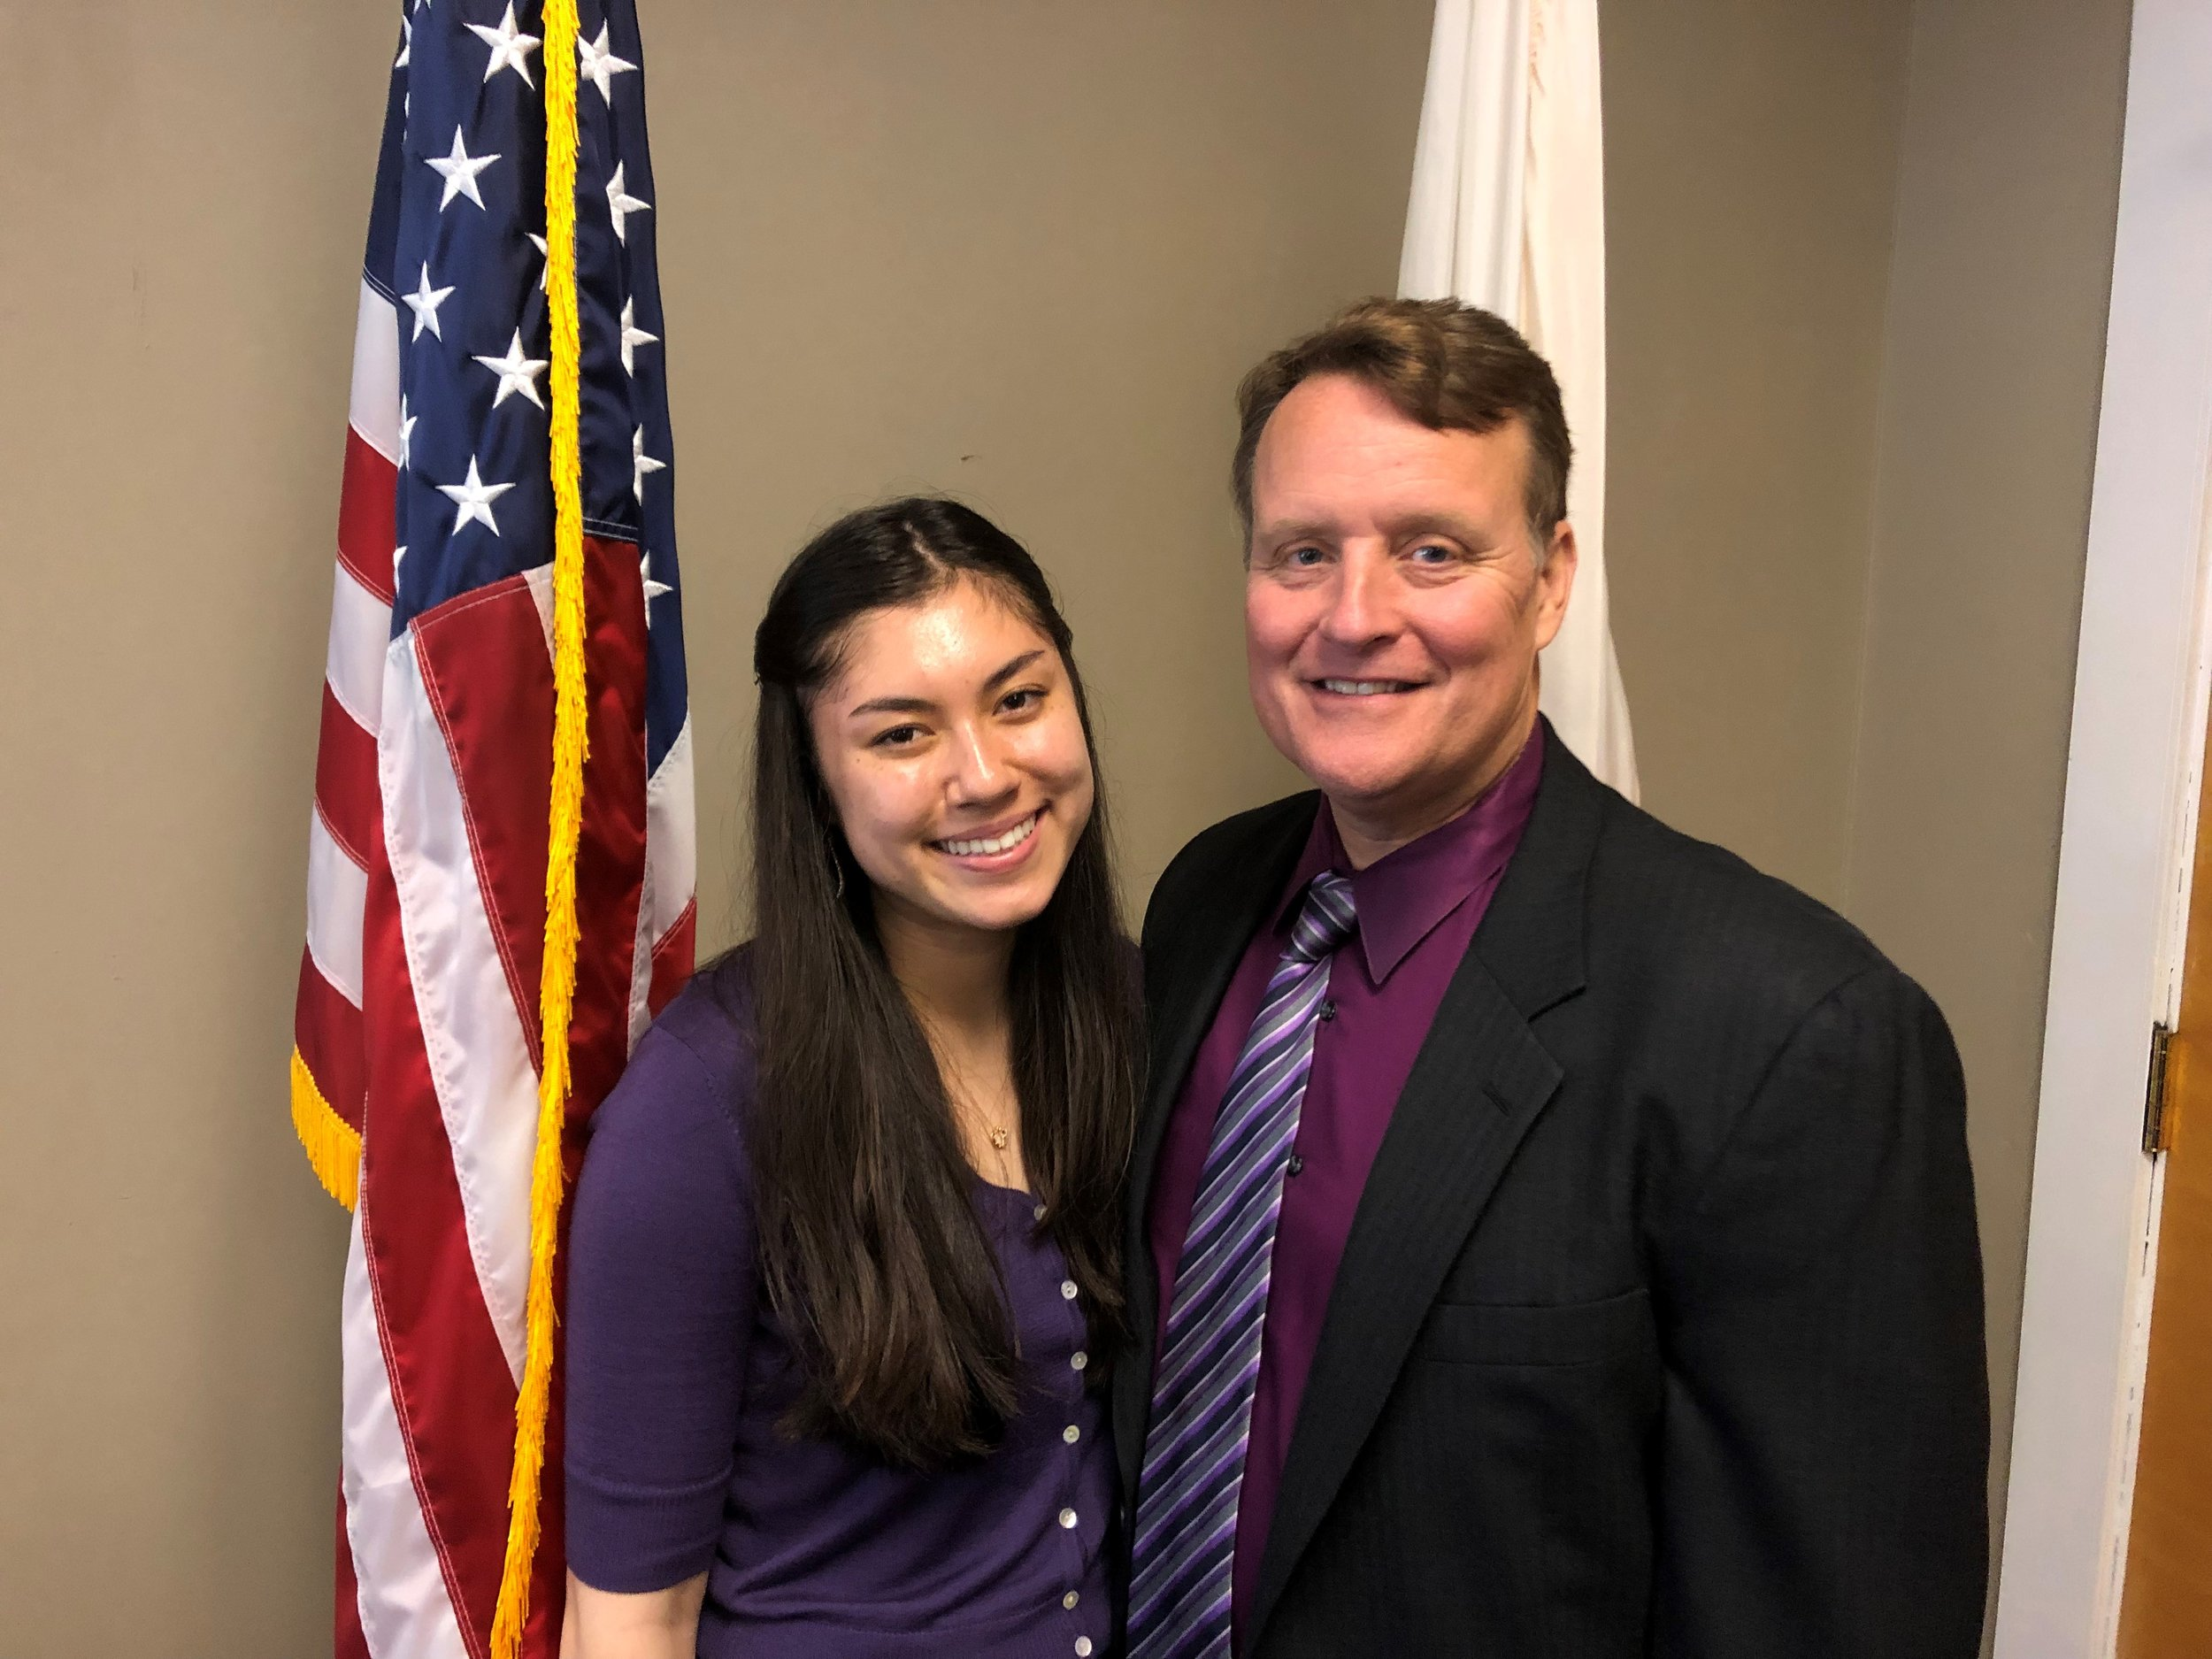 Pictured: Senator Michael O. Moore with intern Katelyn Buckley, a Shrewsbury native.